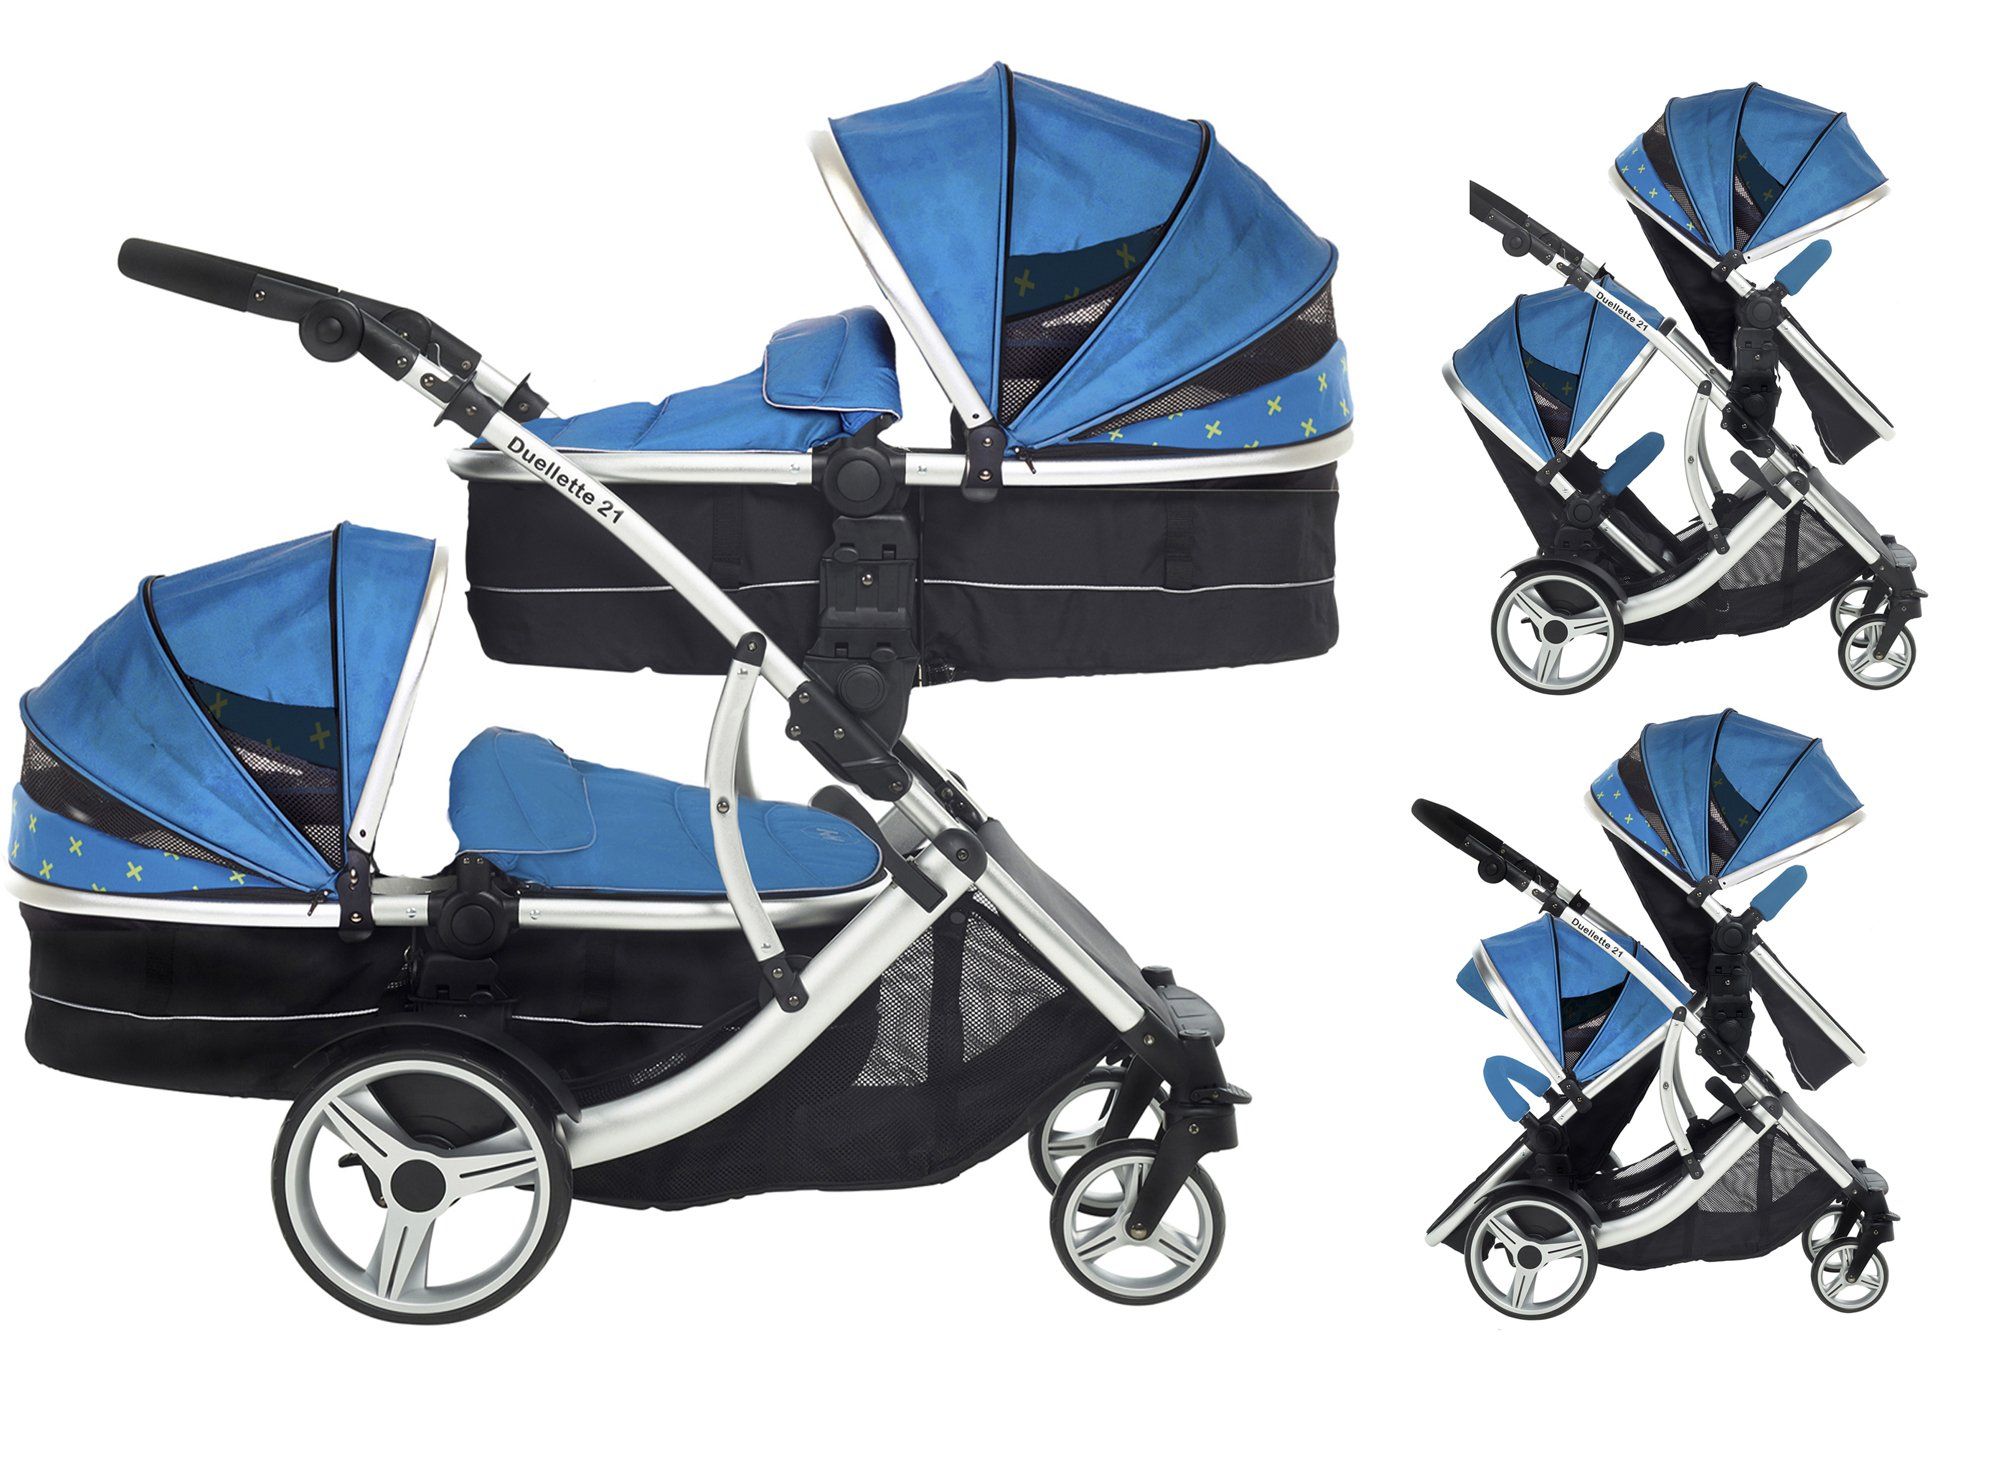 Kids Kargo Duellette 21 Combi Travel system Pram double pushchair NEW COLOUR RANGE! (French aqua plain bumpers) Kids Kargo Demo video please see link https://www.youtube.com/watch?v=X_tEcnQ8O8E%20 Suitability Newborn - 15kg (approx 3 yrs). Carrycot converts to seat unit incl mattress Carrycot & car seats fit in top or bottom position. Compatible car seats; Kidz Kargo 0+, Britax Babysafe 0+ (no adapters needed) or Maxi Cosi adaptors 1